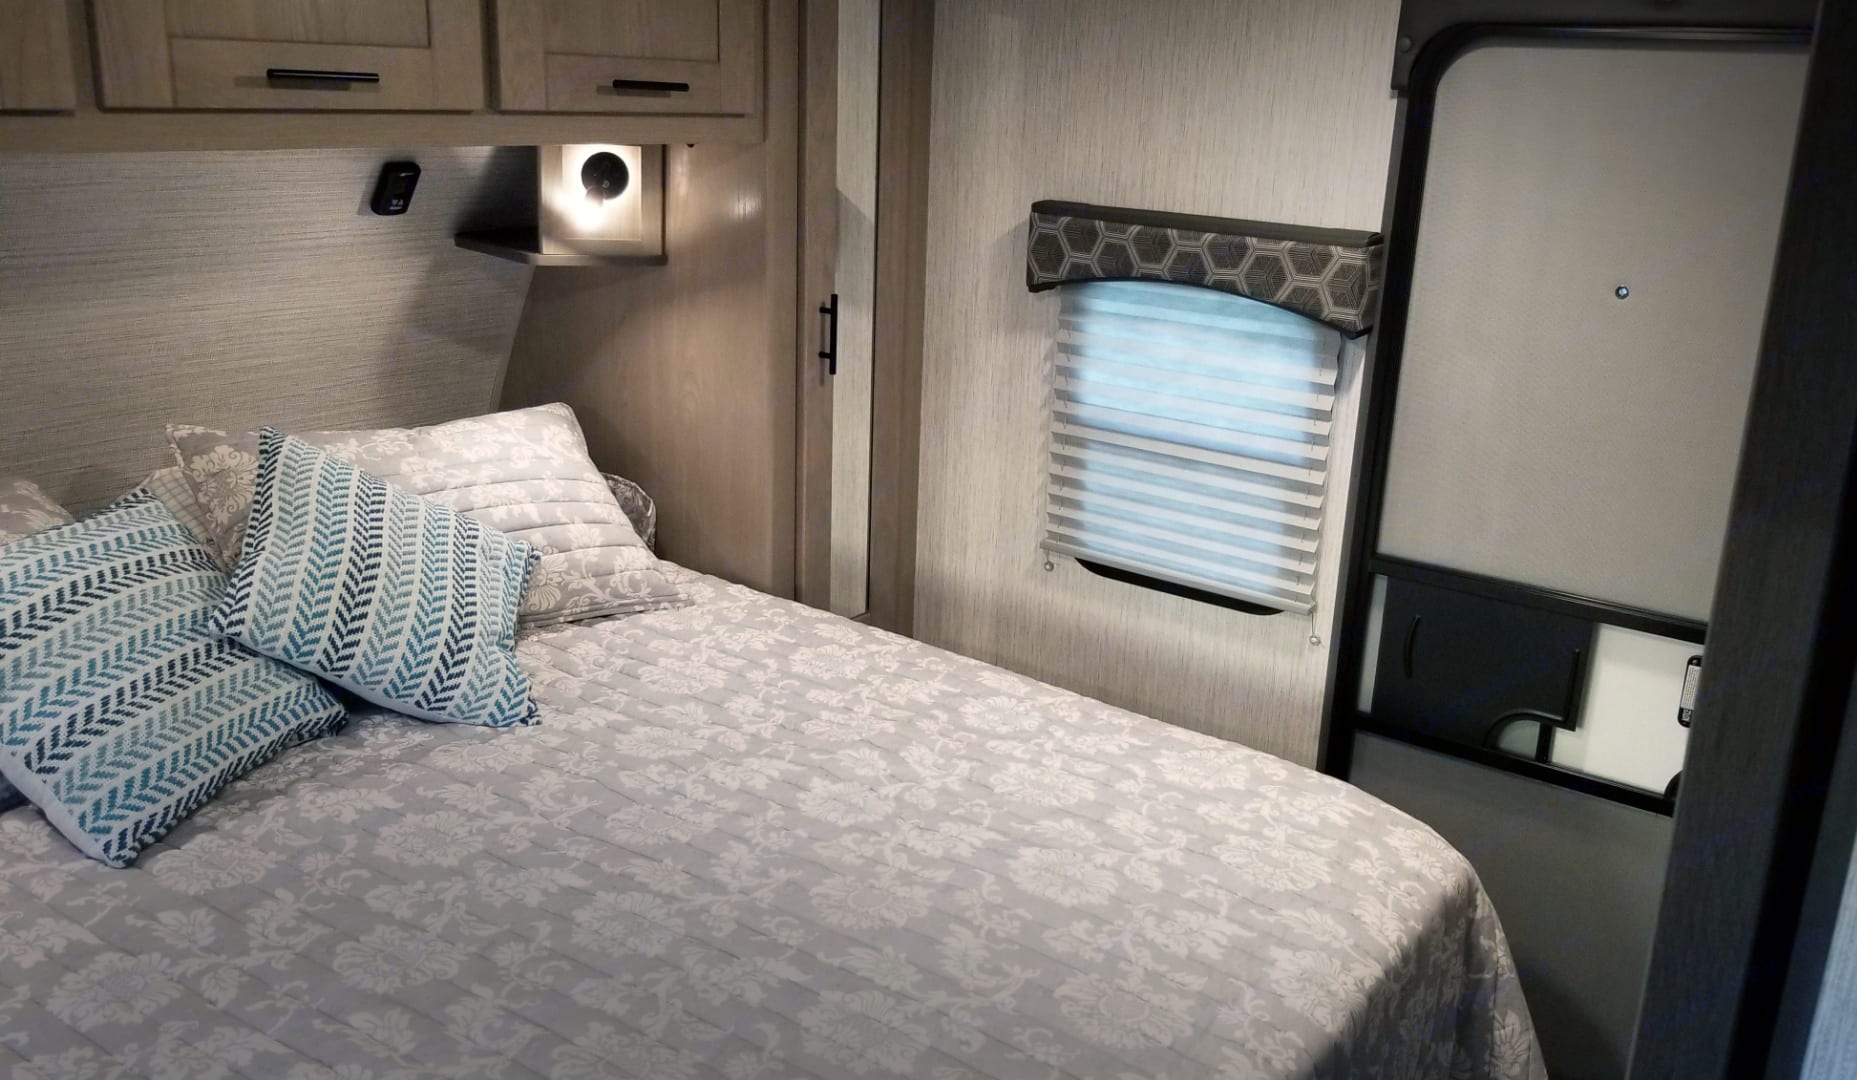 Your feet won't hang off the end of this Residential-sized Queen bed. Access on 3 sides and an Exit door so you won't wake sleeping guests.. Cruiser Rv Corp Shadow Cruiser 2020